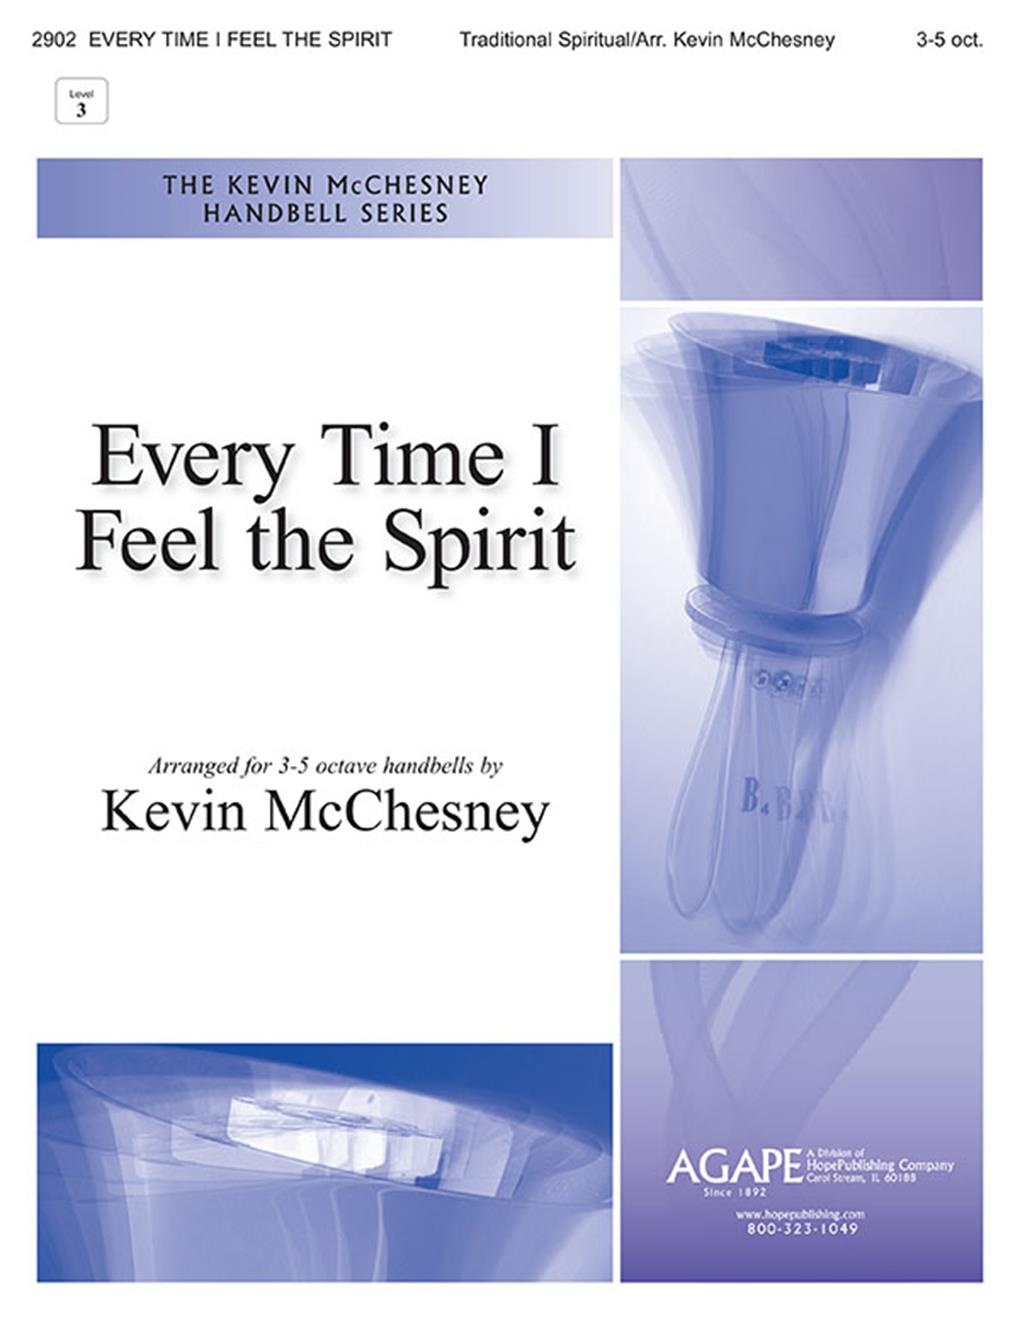 Every Time I Feel the Spirit - 3-5 Oct. Cover Image